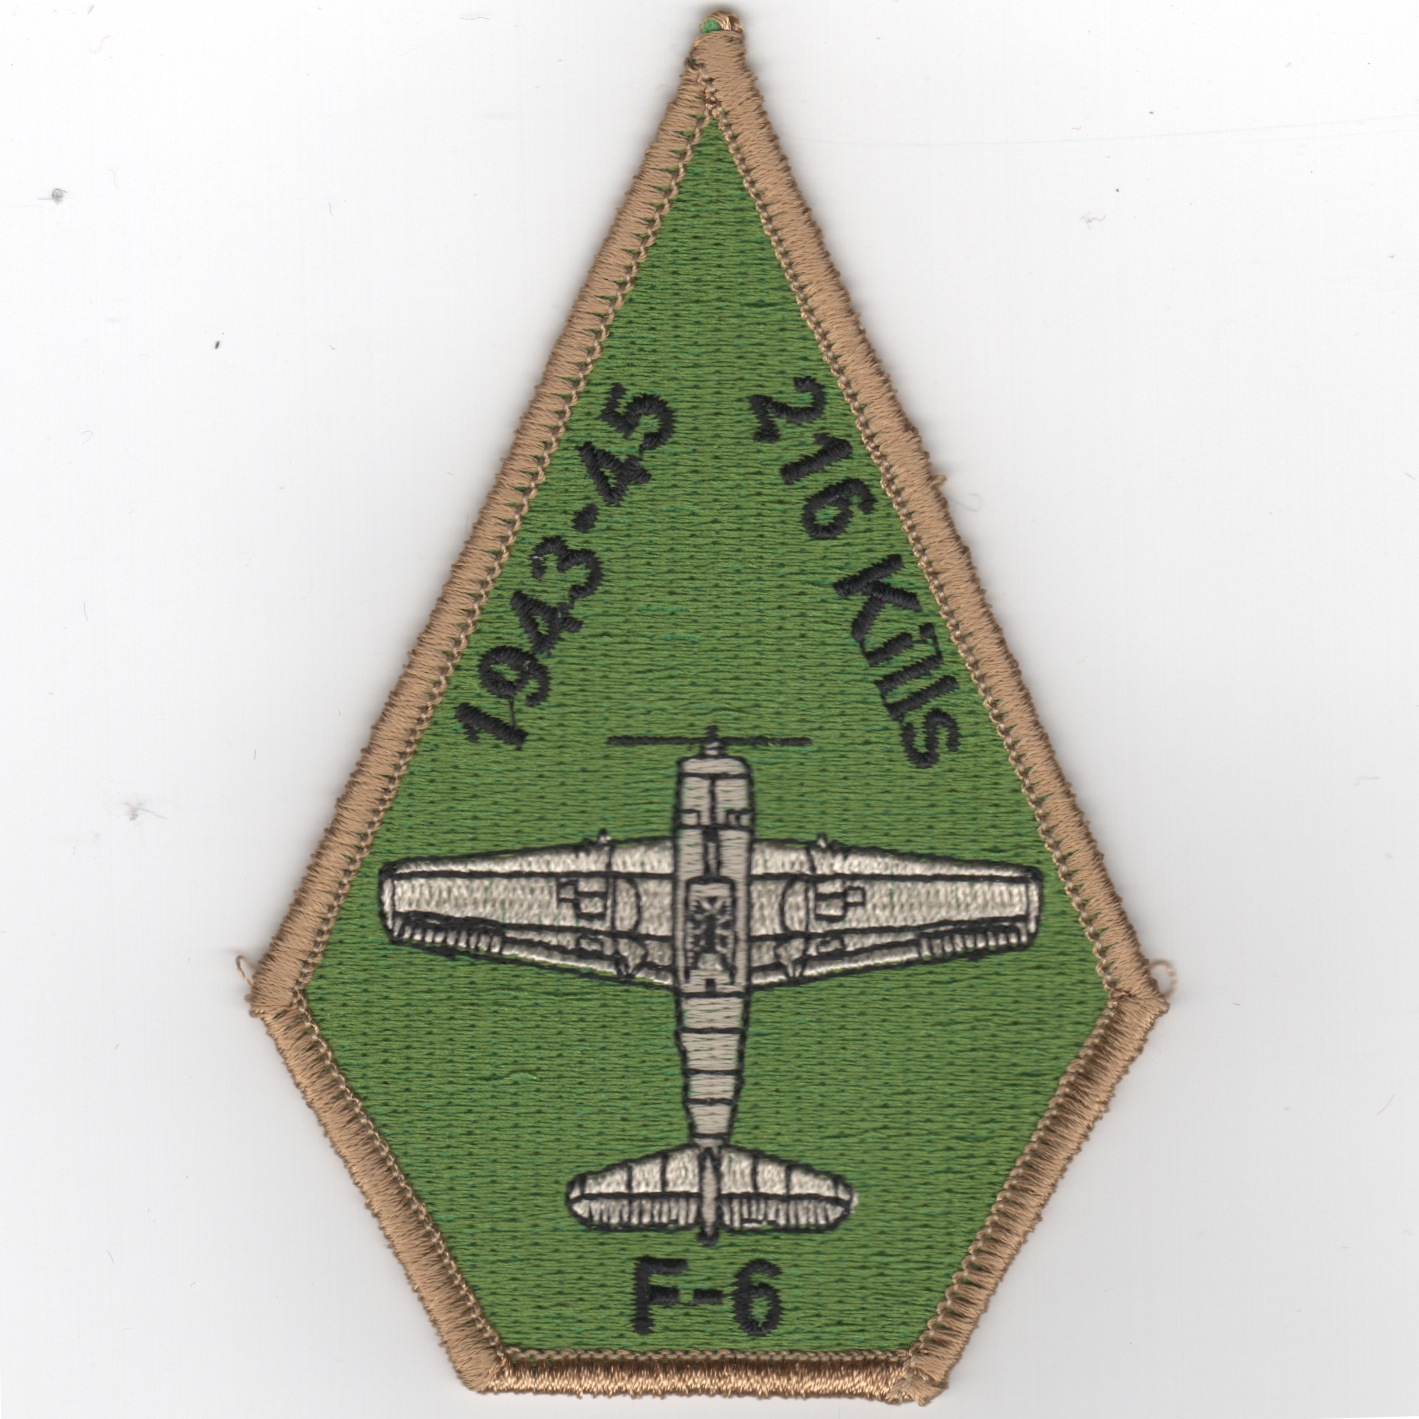 VF/VFA-2 'F6 216 Kills' Coffin Patch